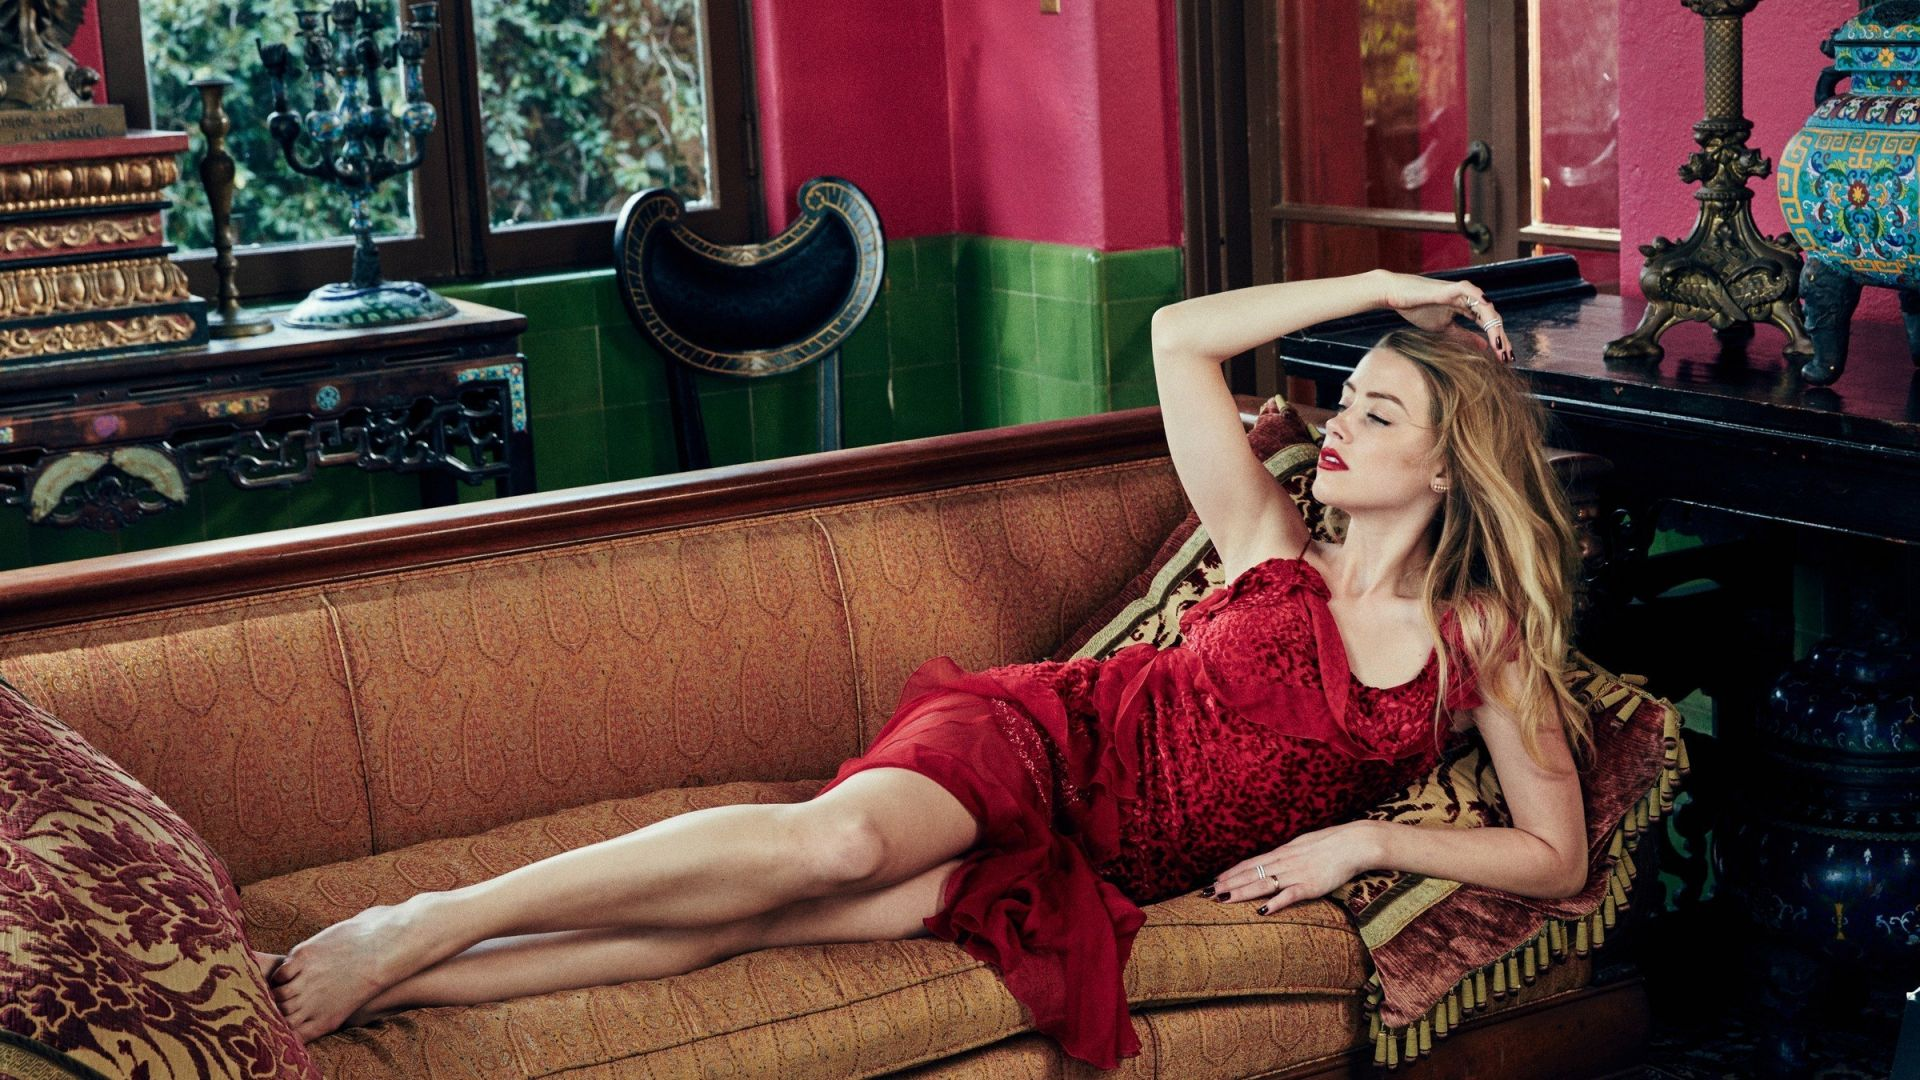 Hd Anime Girl Wallpapers 1080p Desktop Wallpaper Amber Heard In Red Dress Sofa Hd Image